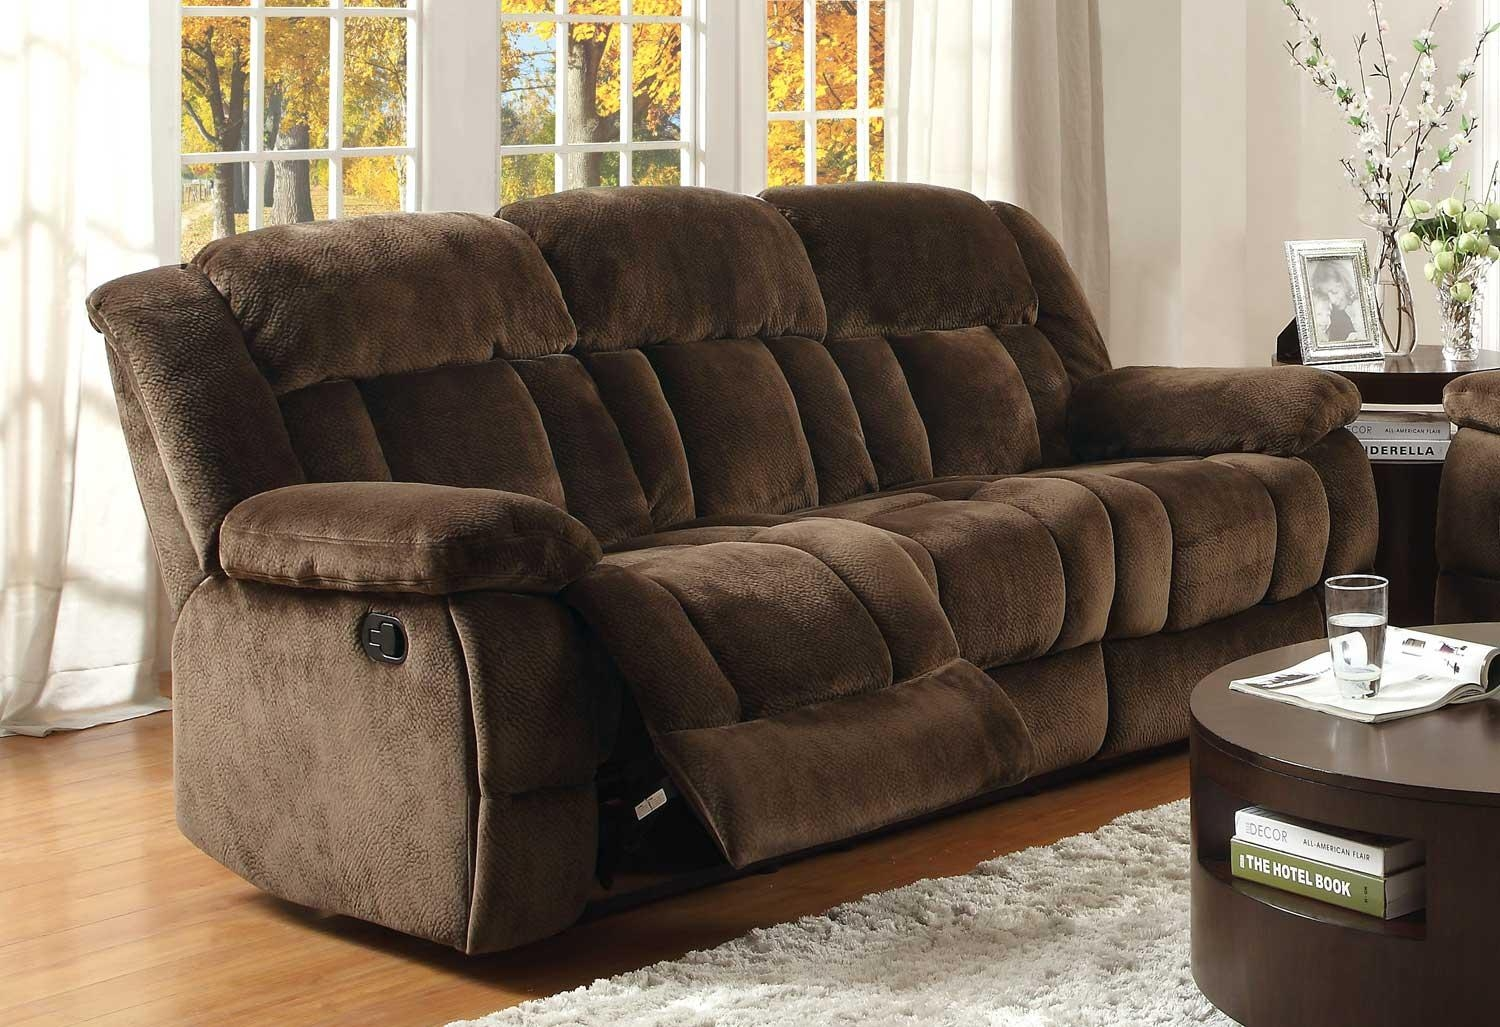 Sofas Center : Furniture Romantic Loveseat Recliner With Console Within Sofas With Console (Image 14 of 20)